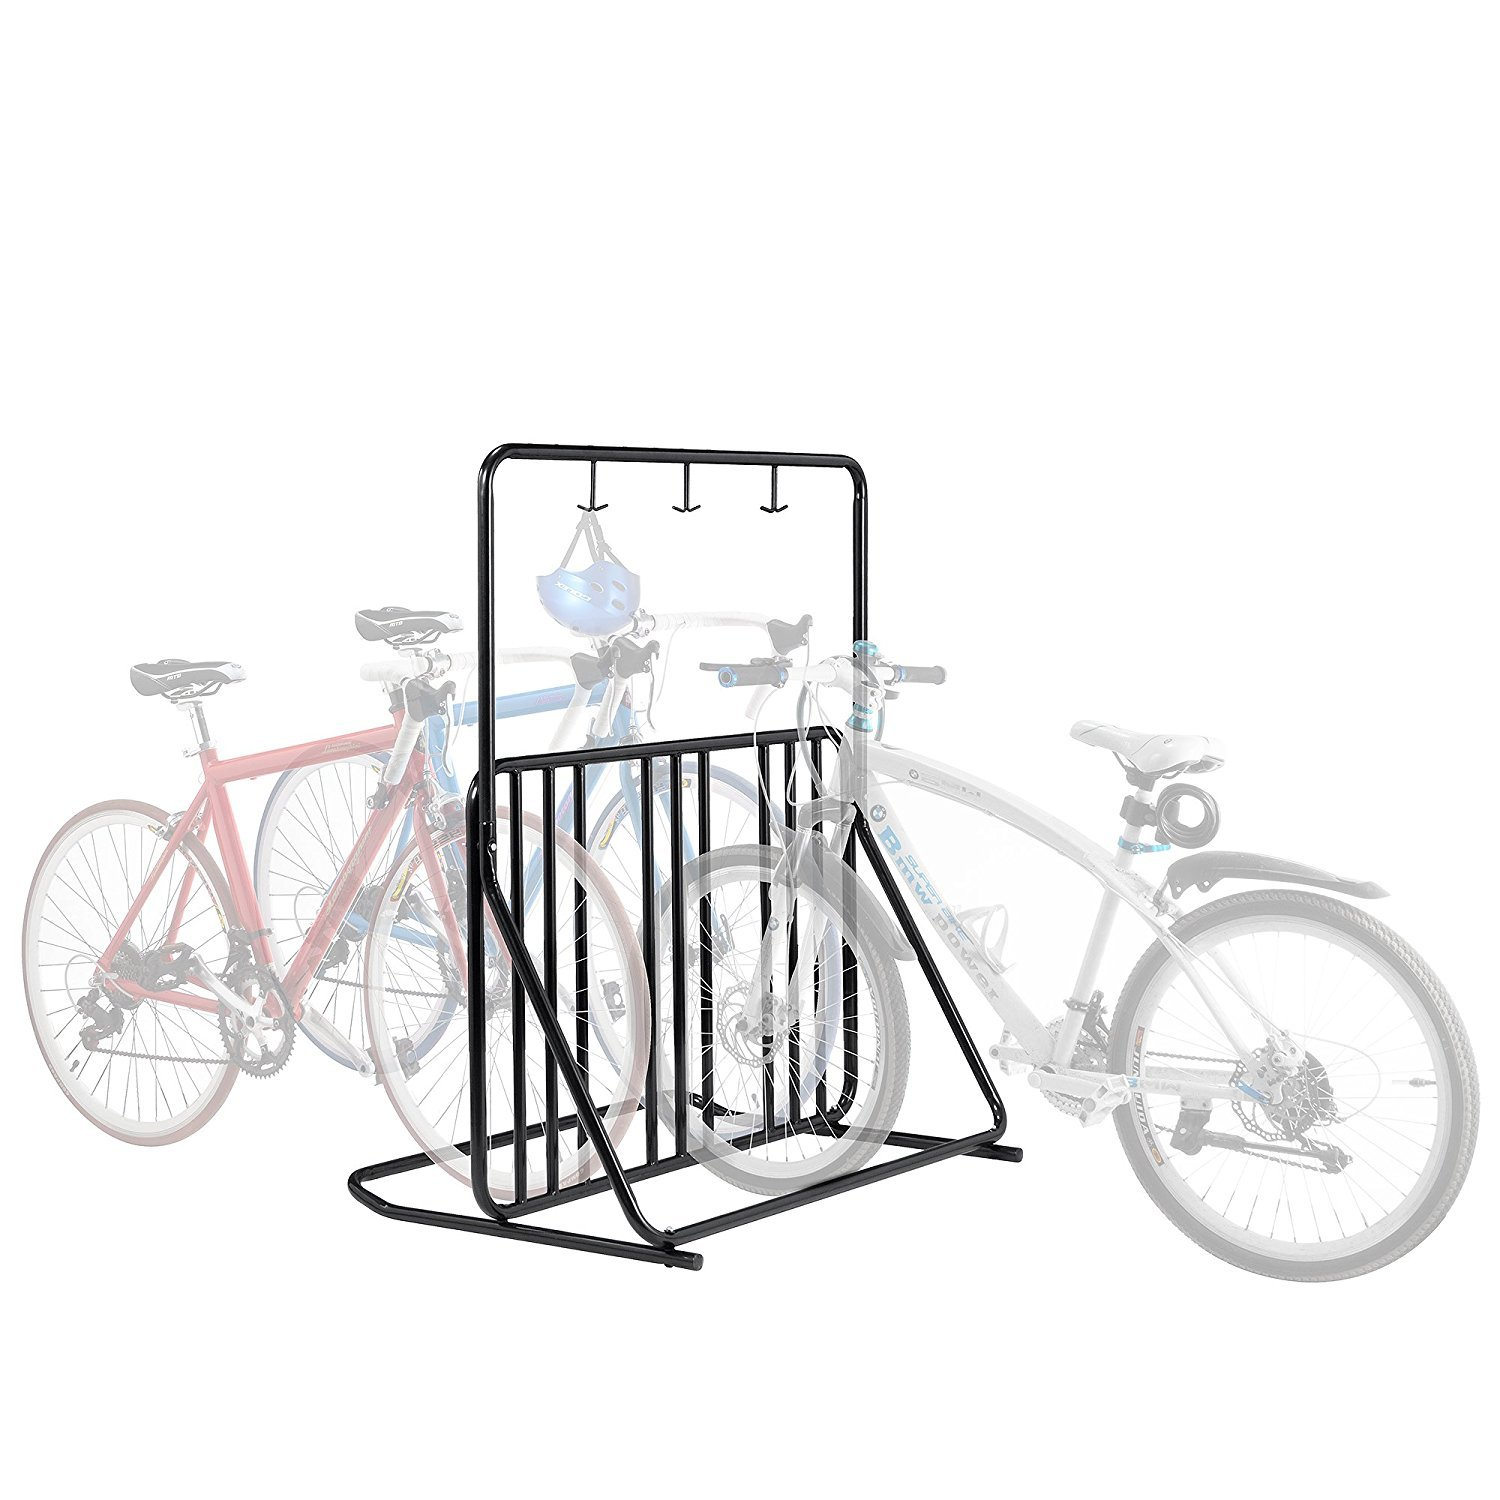 2022 RAD Cycle Six Bike Floor Stand Bicycle Instant Park Pro-Quality! by RAD Cycle Products